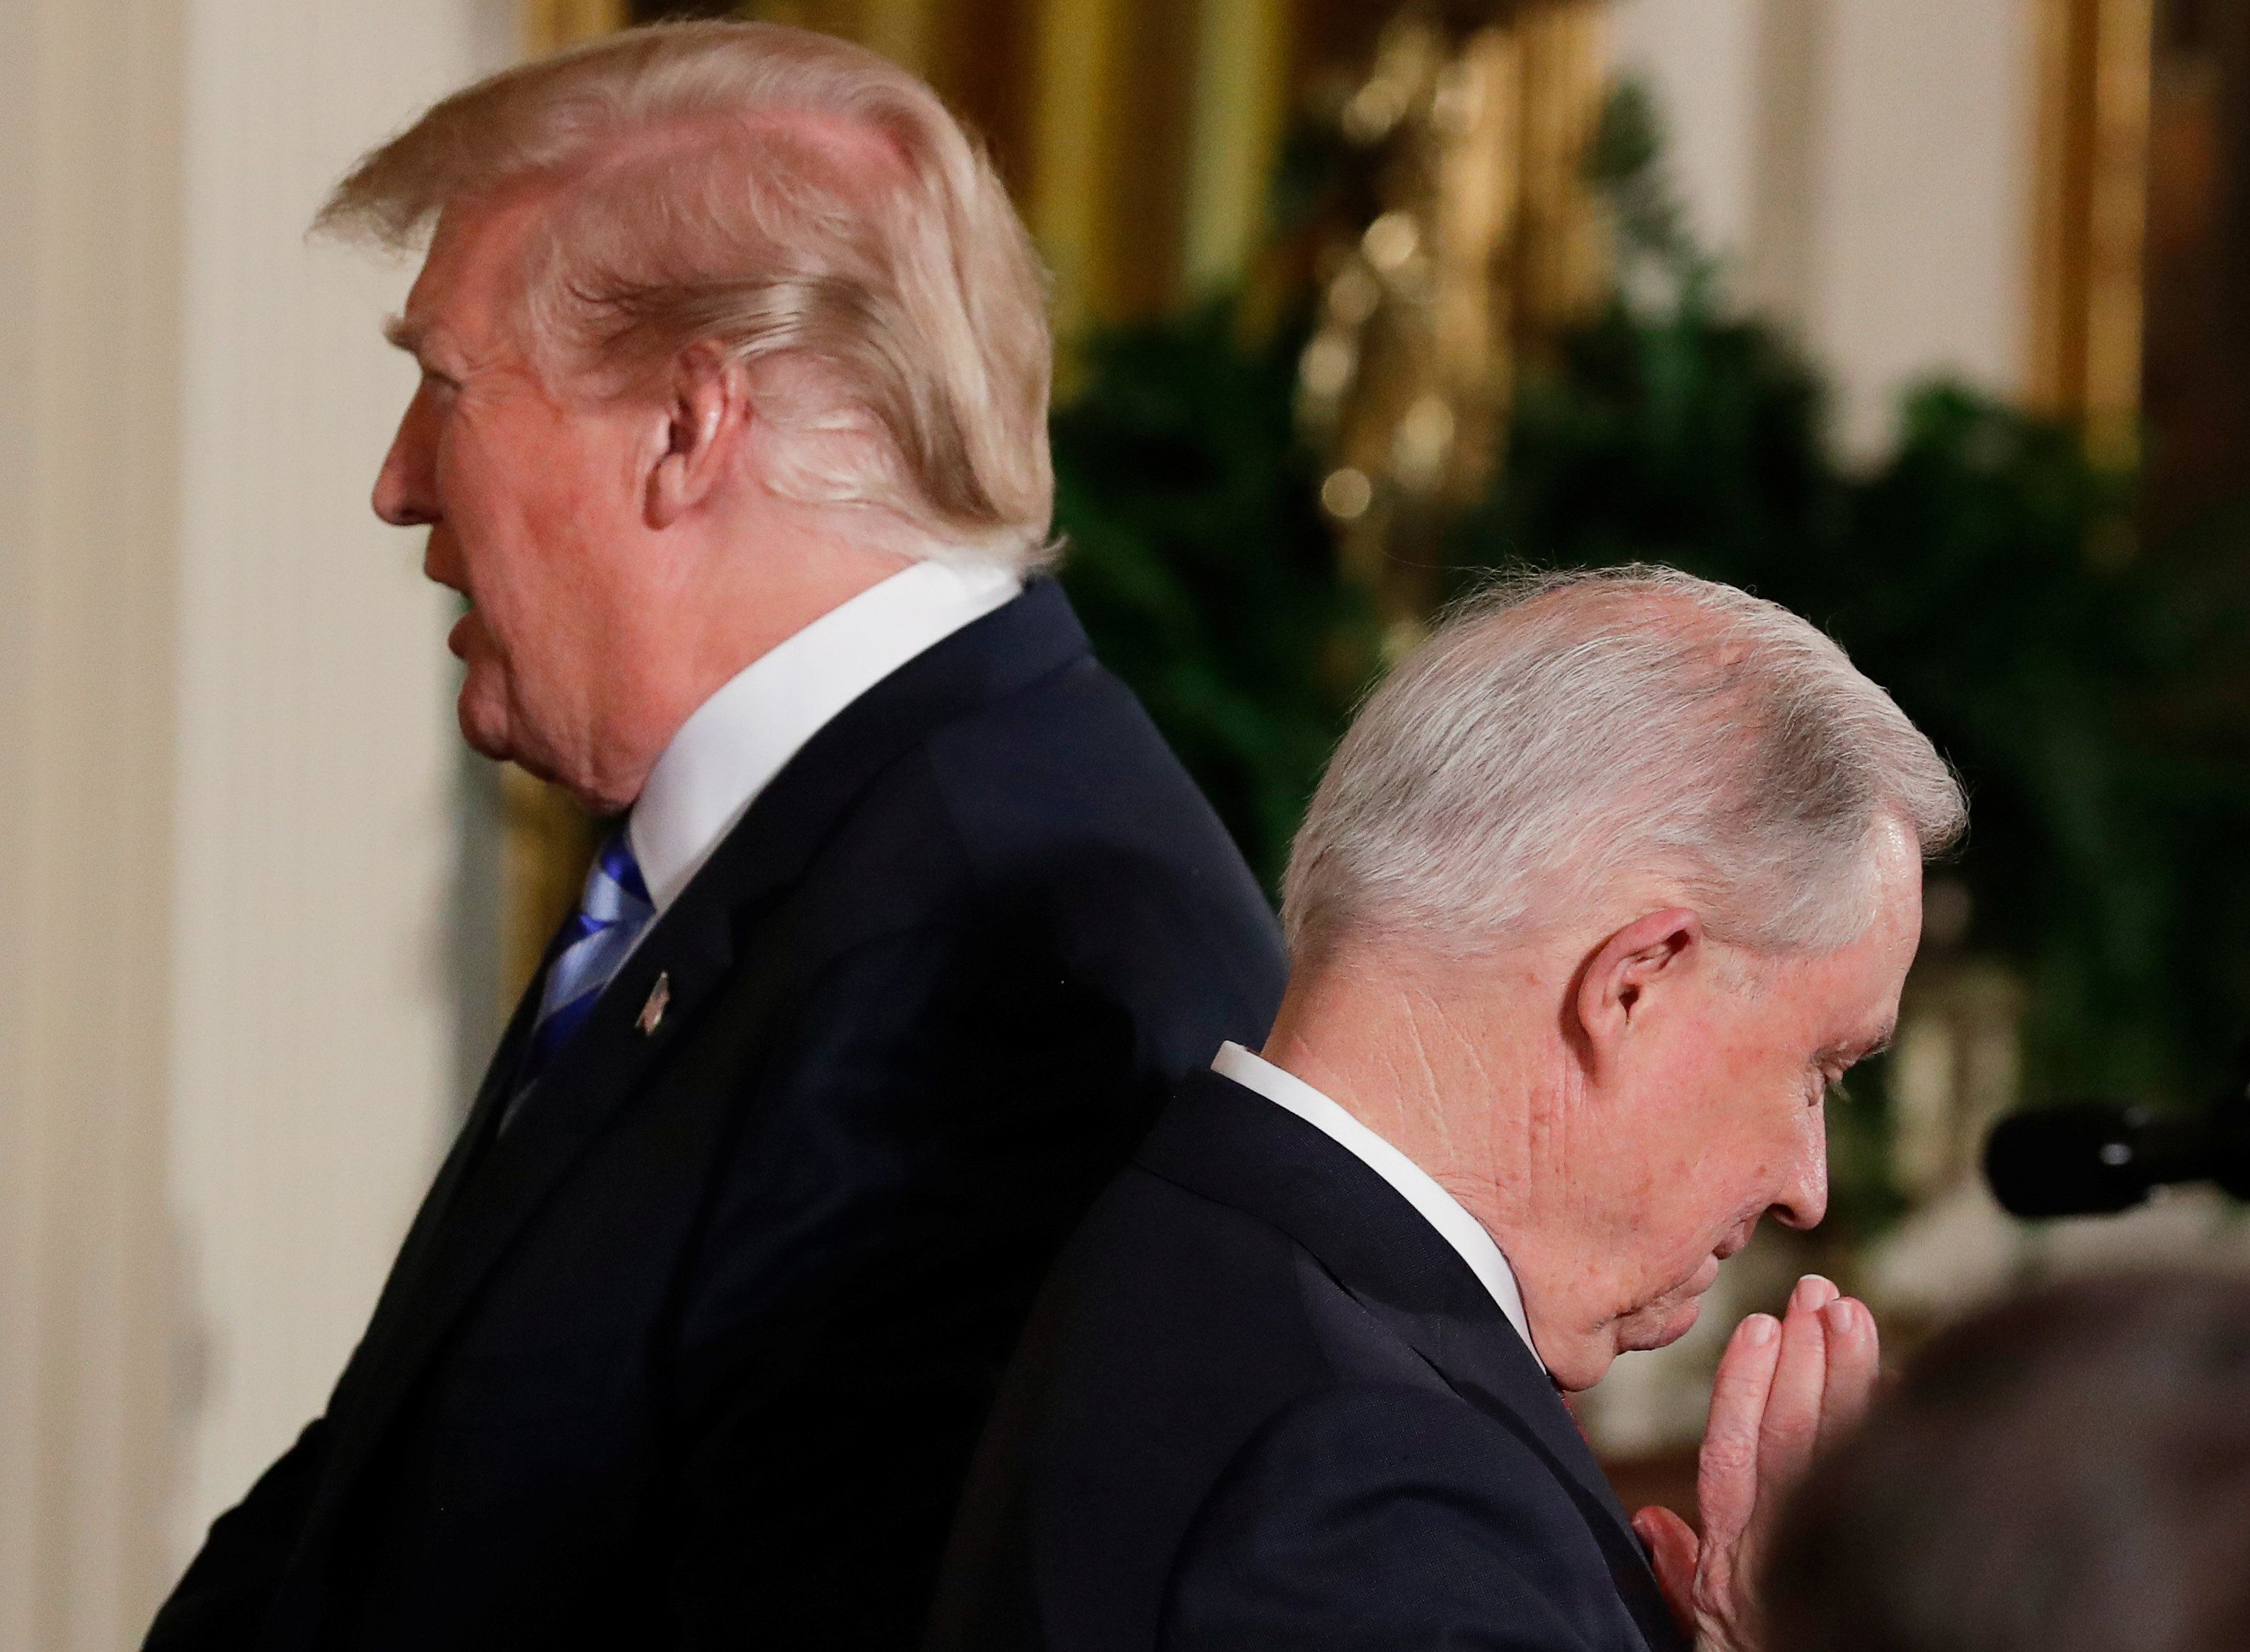 U.S. President Donald Trump and Attorney General Jeff Sessions (front) host a Public Safety Medal of Valor awards ceremony in the East Room of the White House in Washington, U.S., February 20, 2018. REUTERS/Jonathan Ernst     TPX IMAGES OF THE DAY